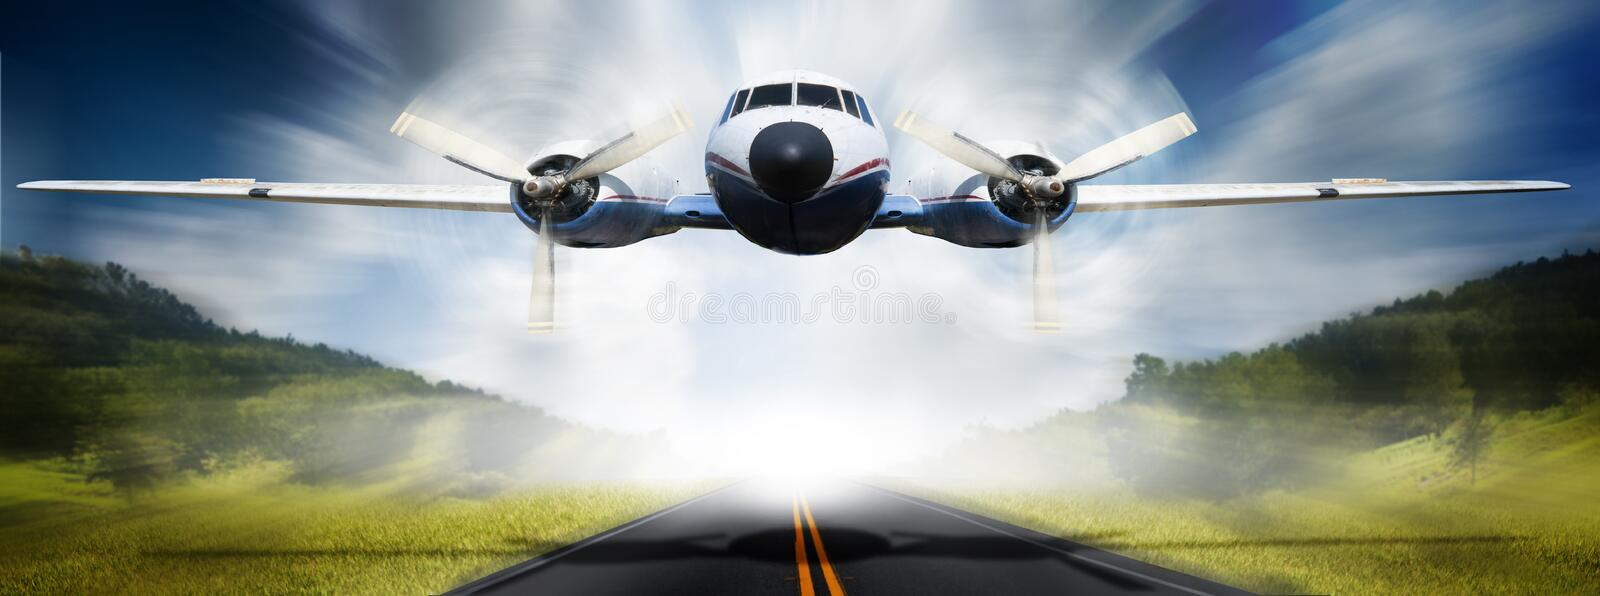 Download Airplane Royalty Free Stock Photography - Image: 21042217